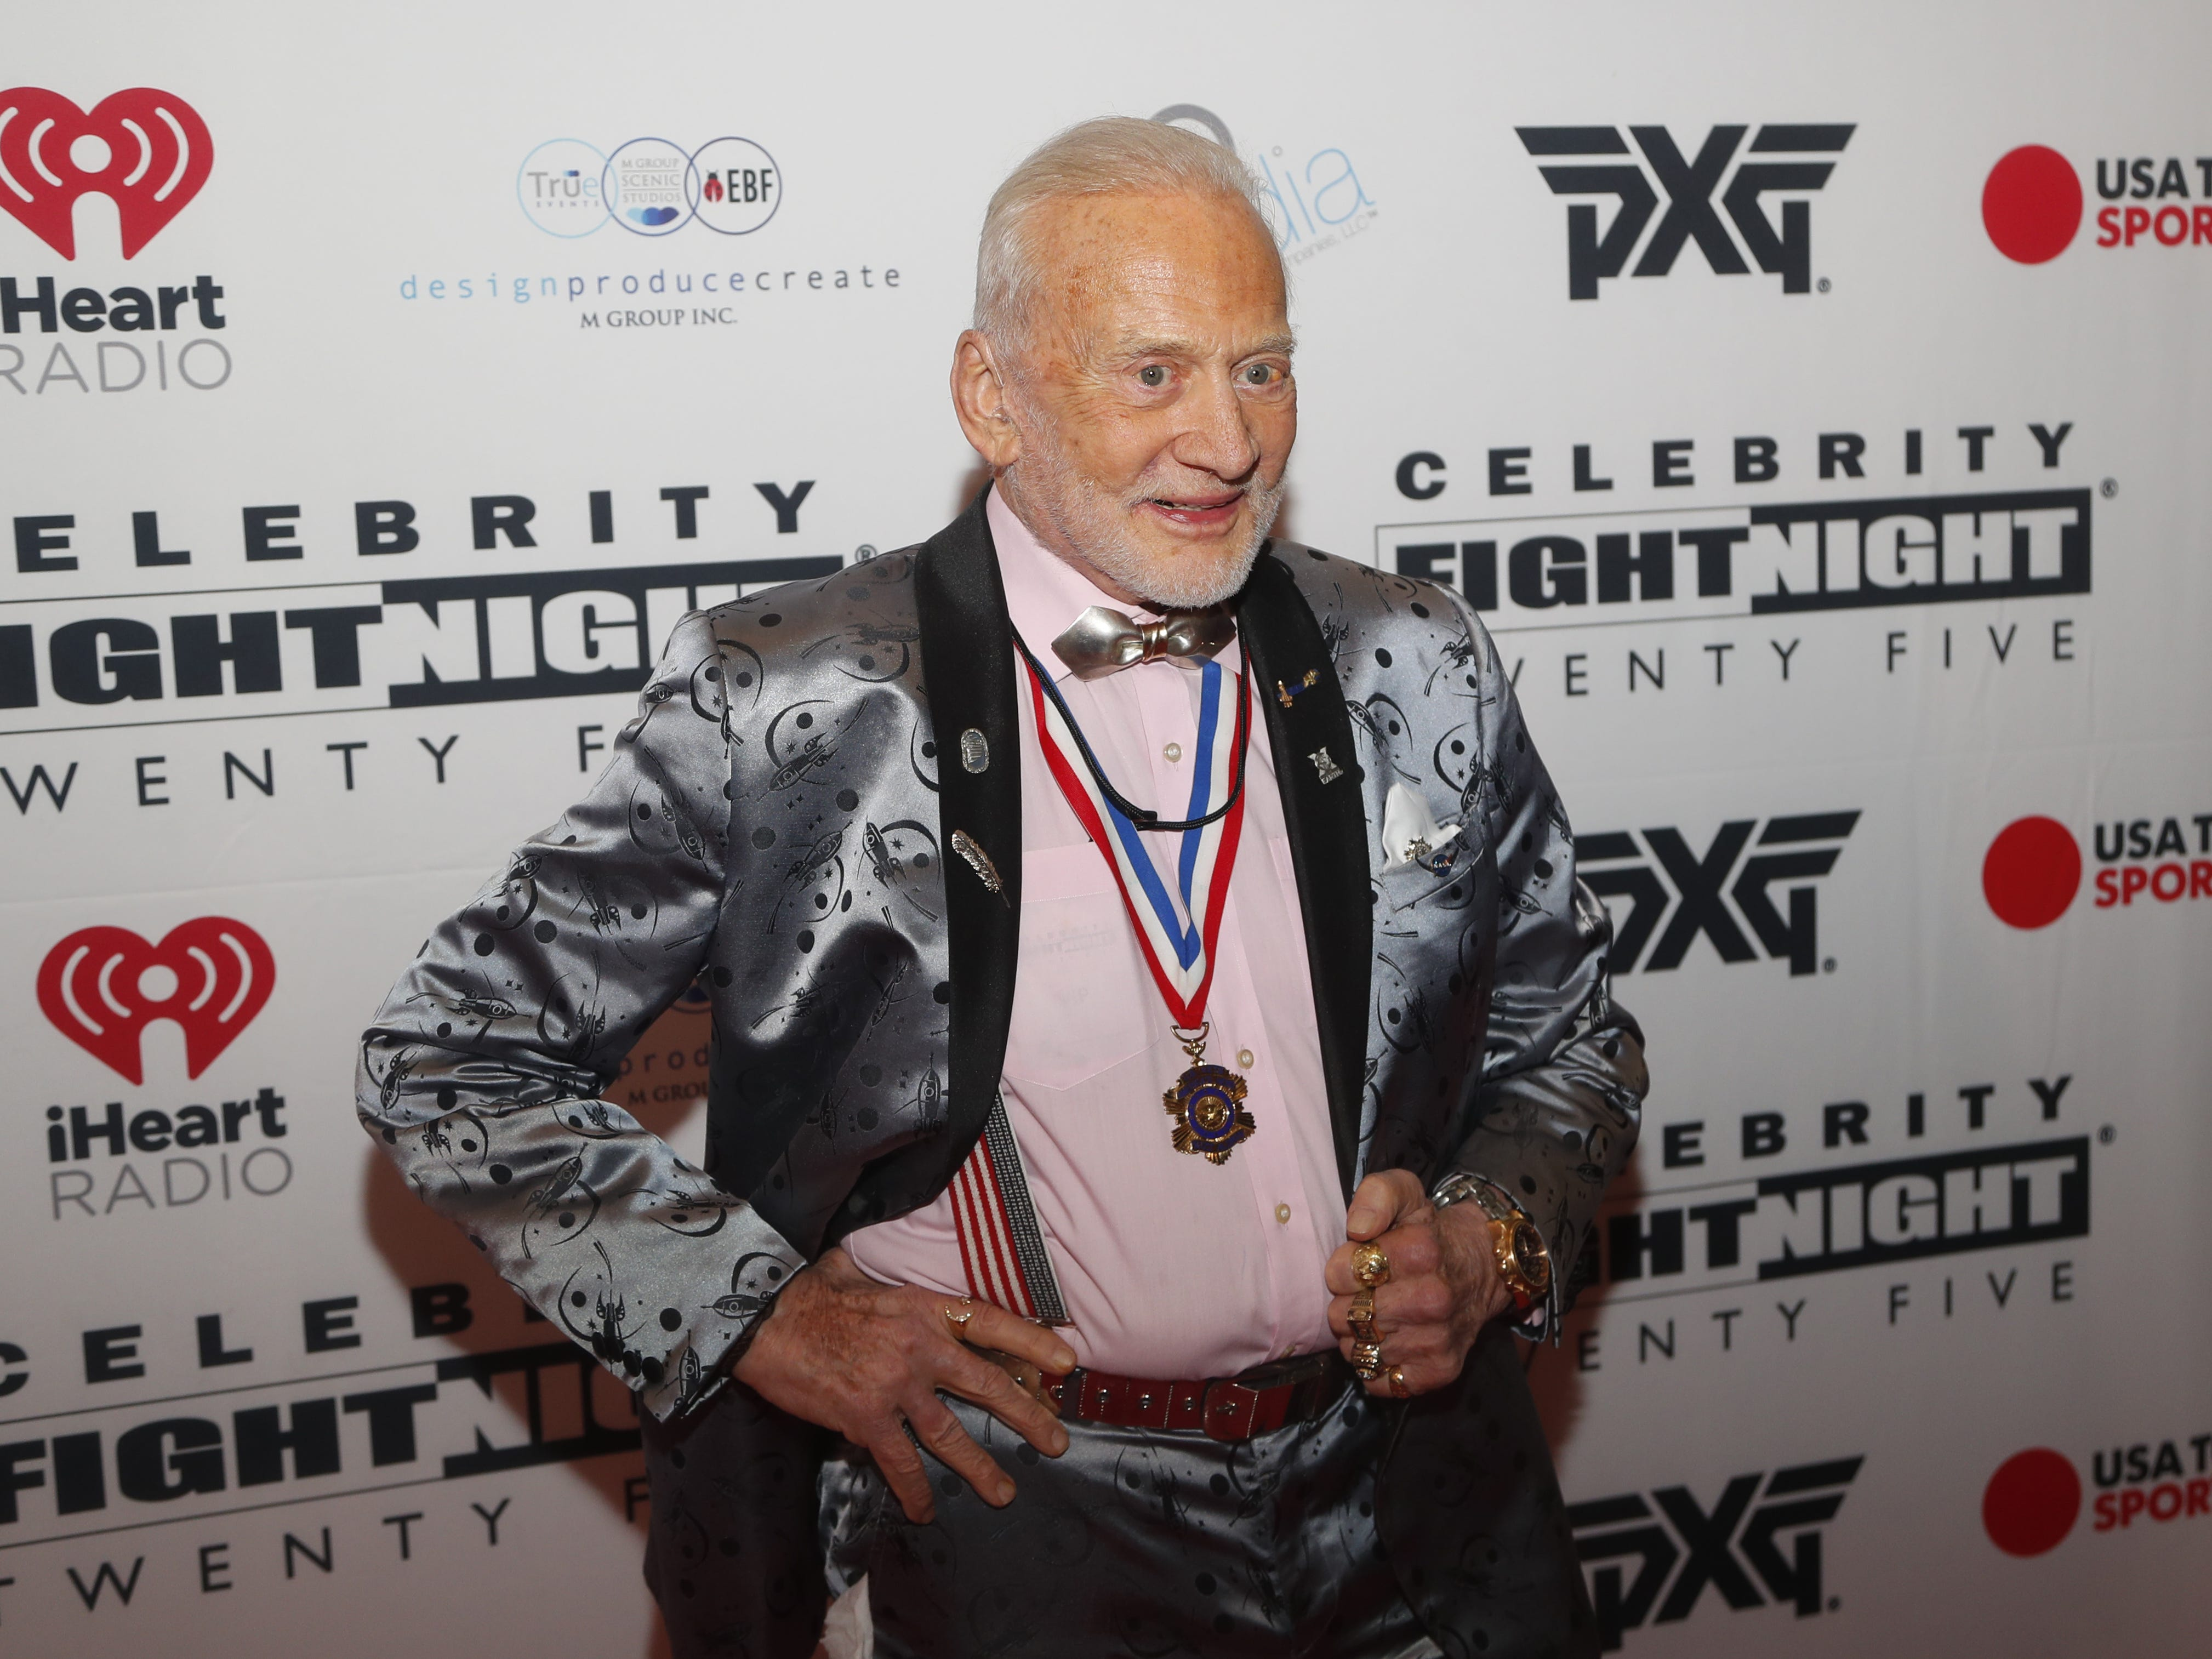 Buzz Aldrin poses for pictures during the Celebrity Fight Night red carpet in Scottsdale, Ariz., on March 23, 2019.